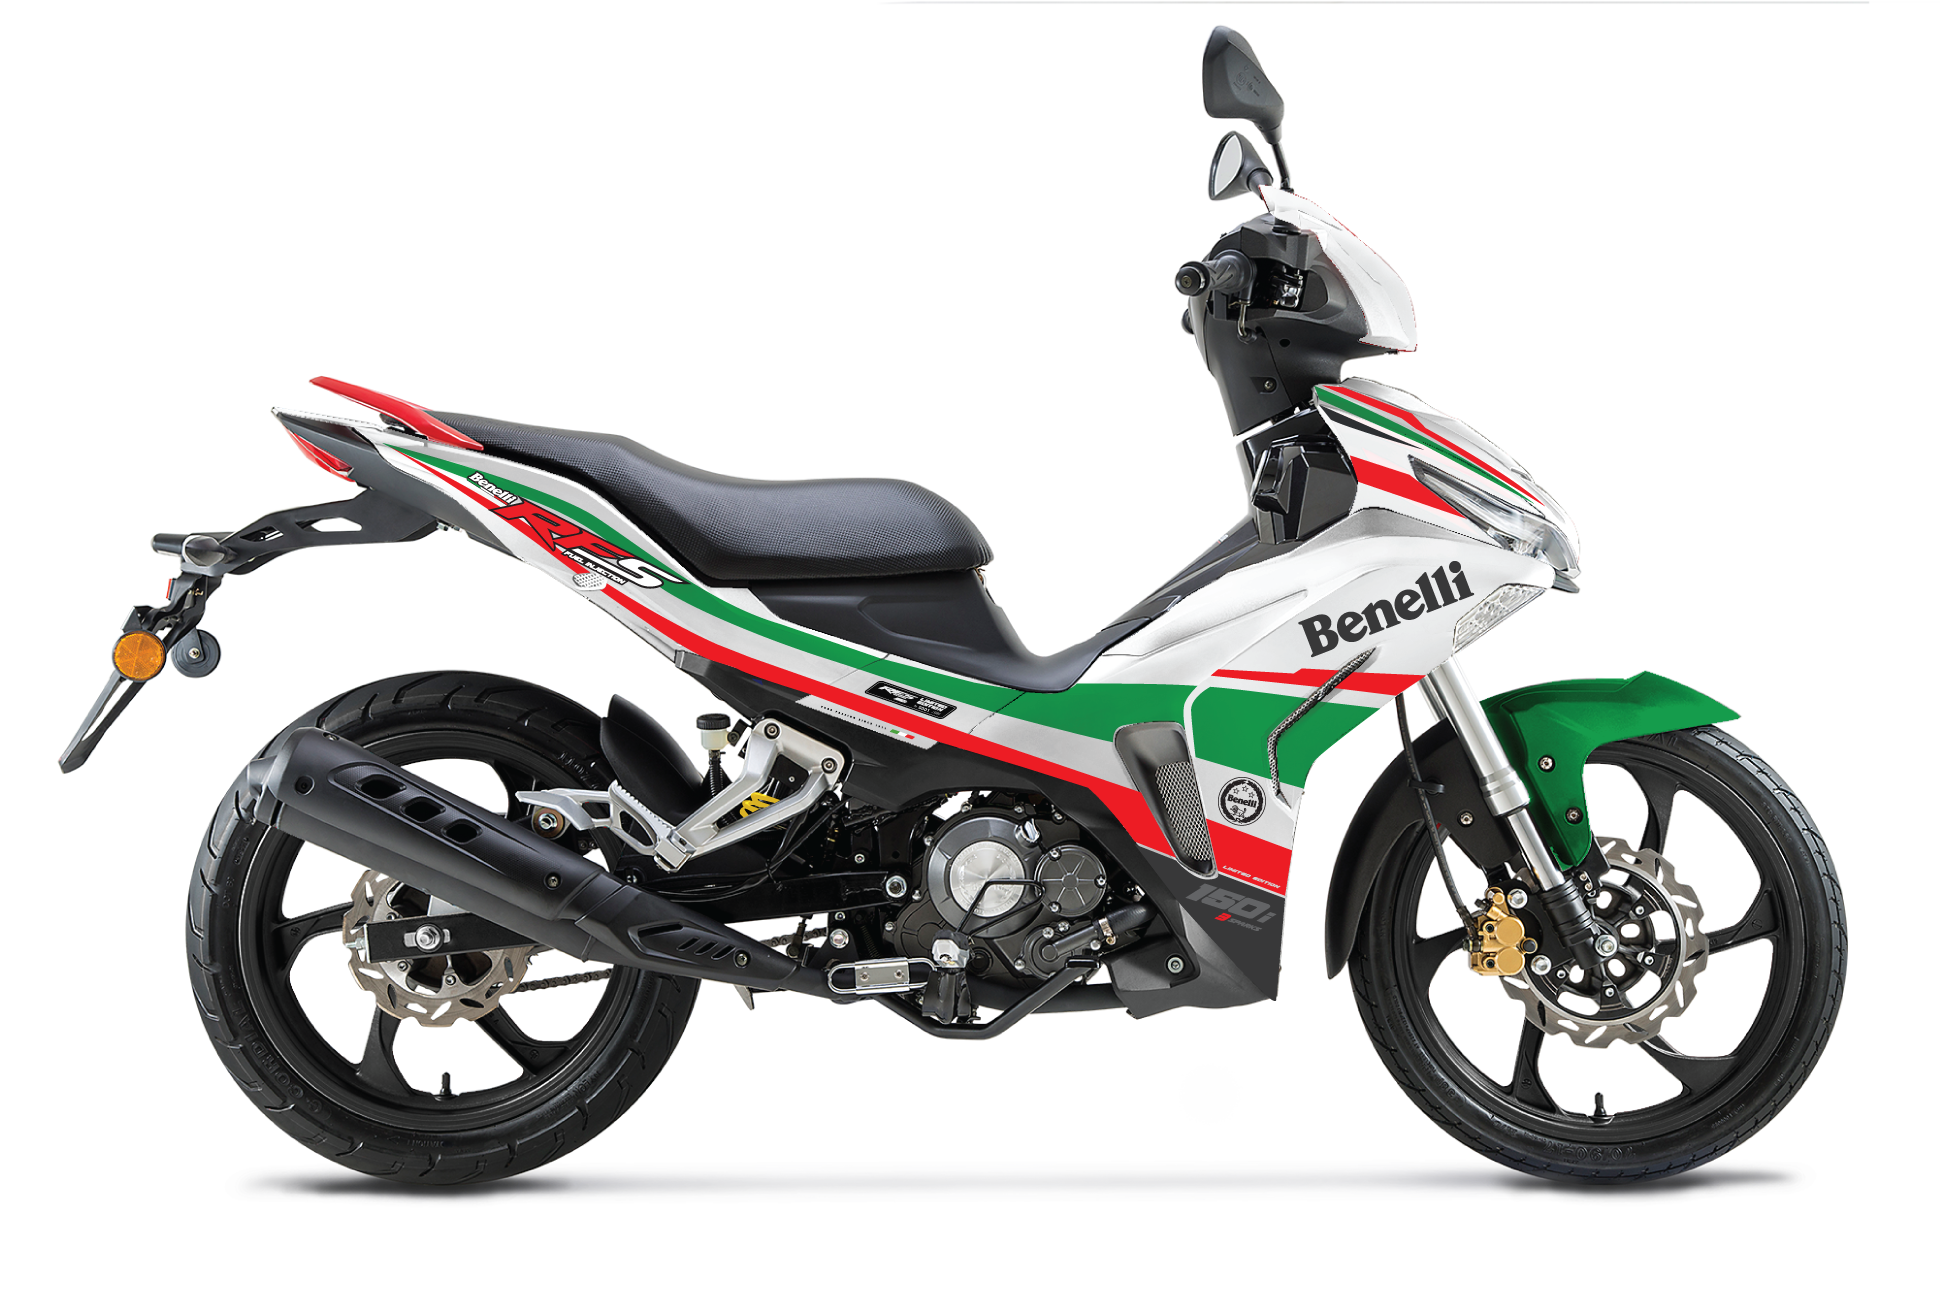 Benelli RFS 150i Limited Edition arrives to shake up the supercub segment